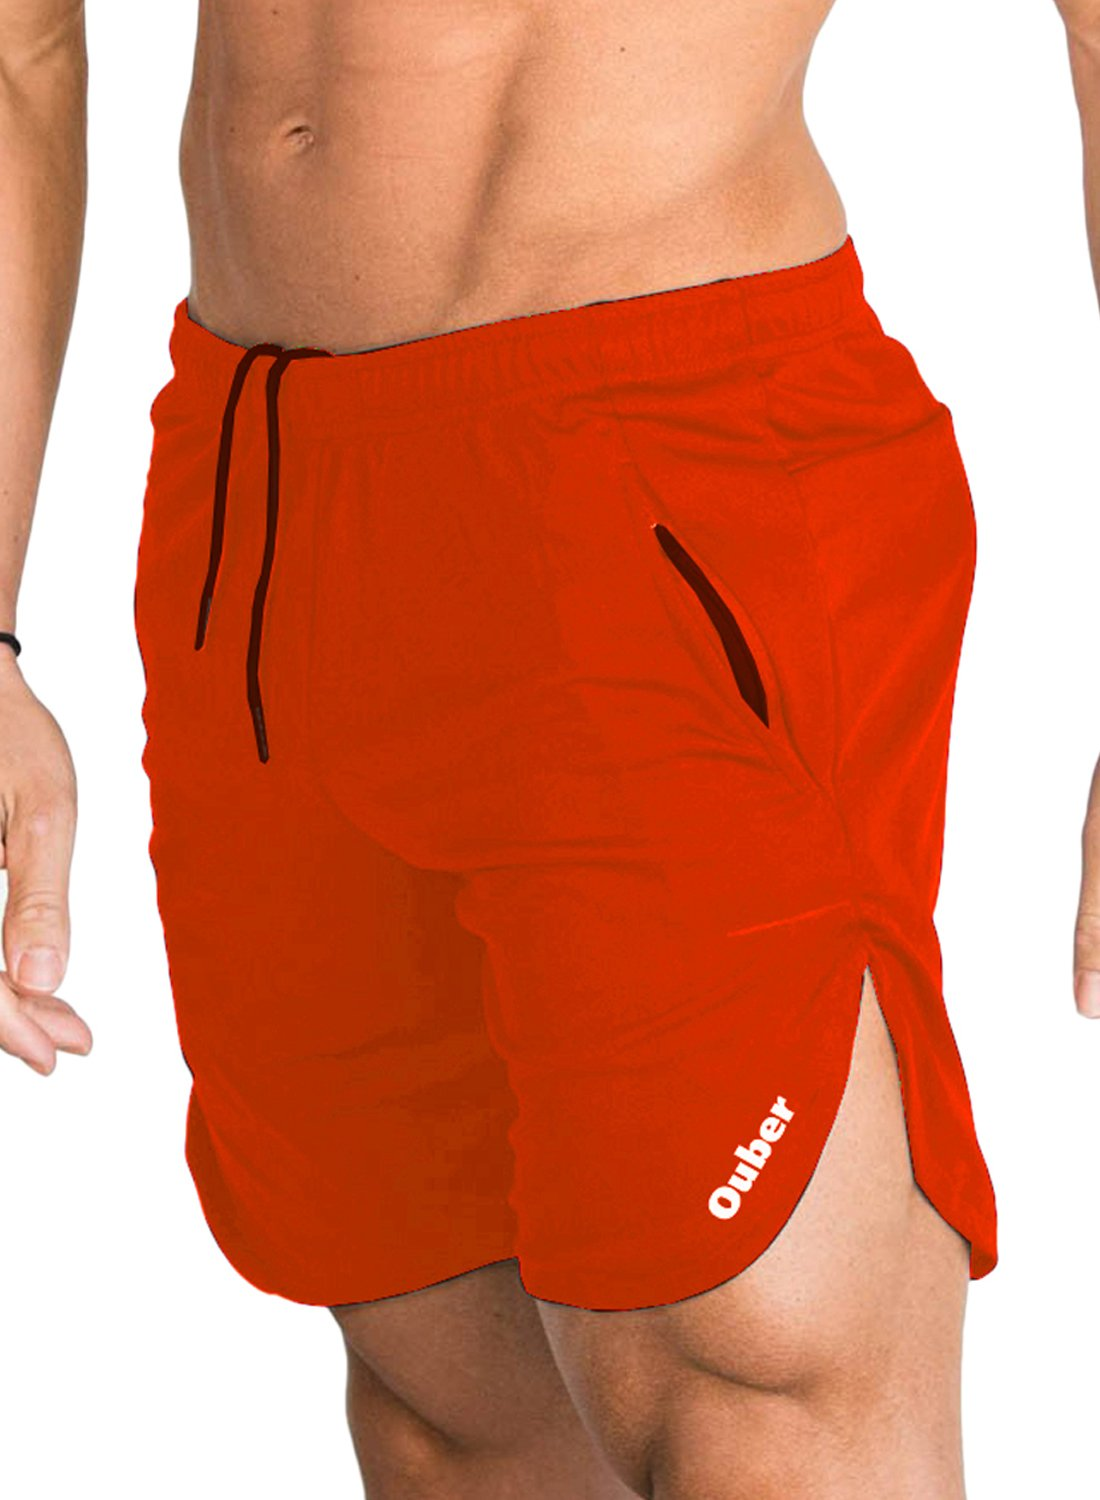 Ouber Men's Fitted Cotton Workout Shorts Casual Gym Joggers Shorts with Zipper Pockets (Orange,XL) by Ouber